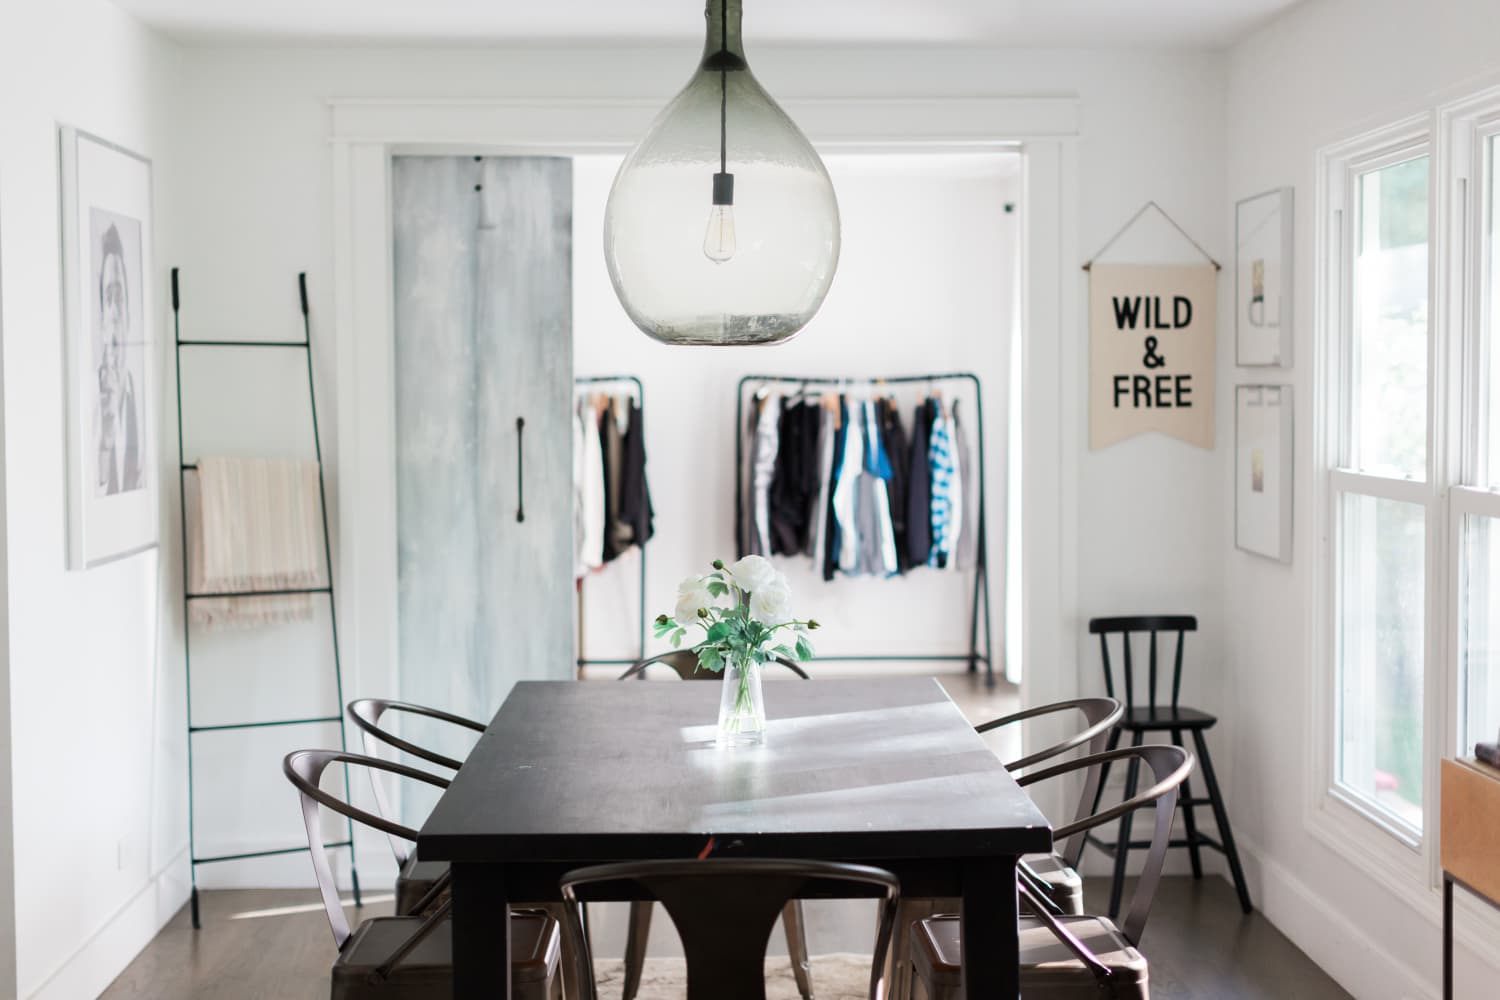 9 Things No One Needs Anymore and Should Declutter